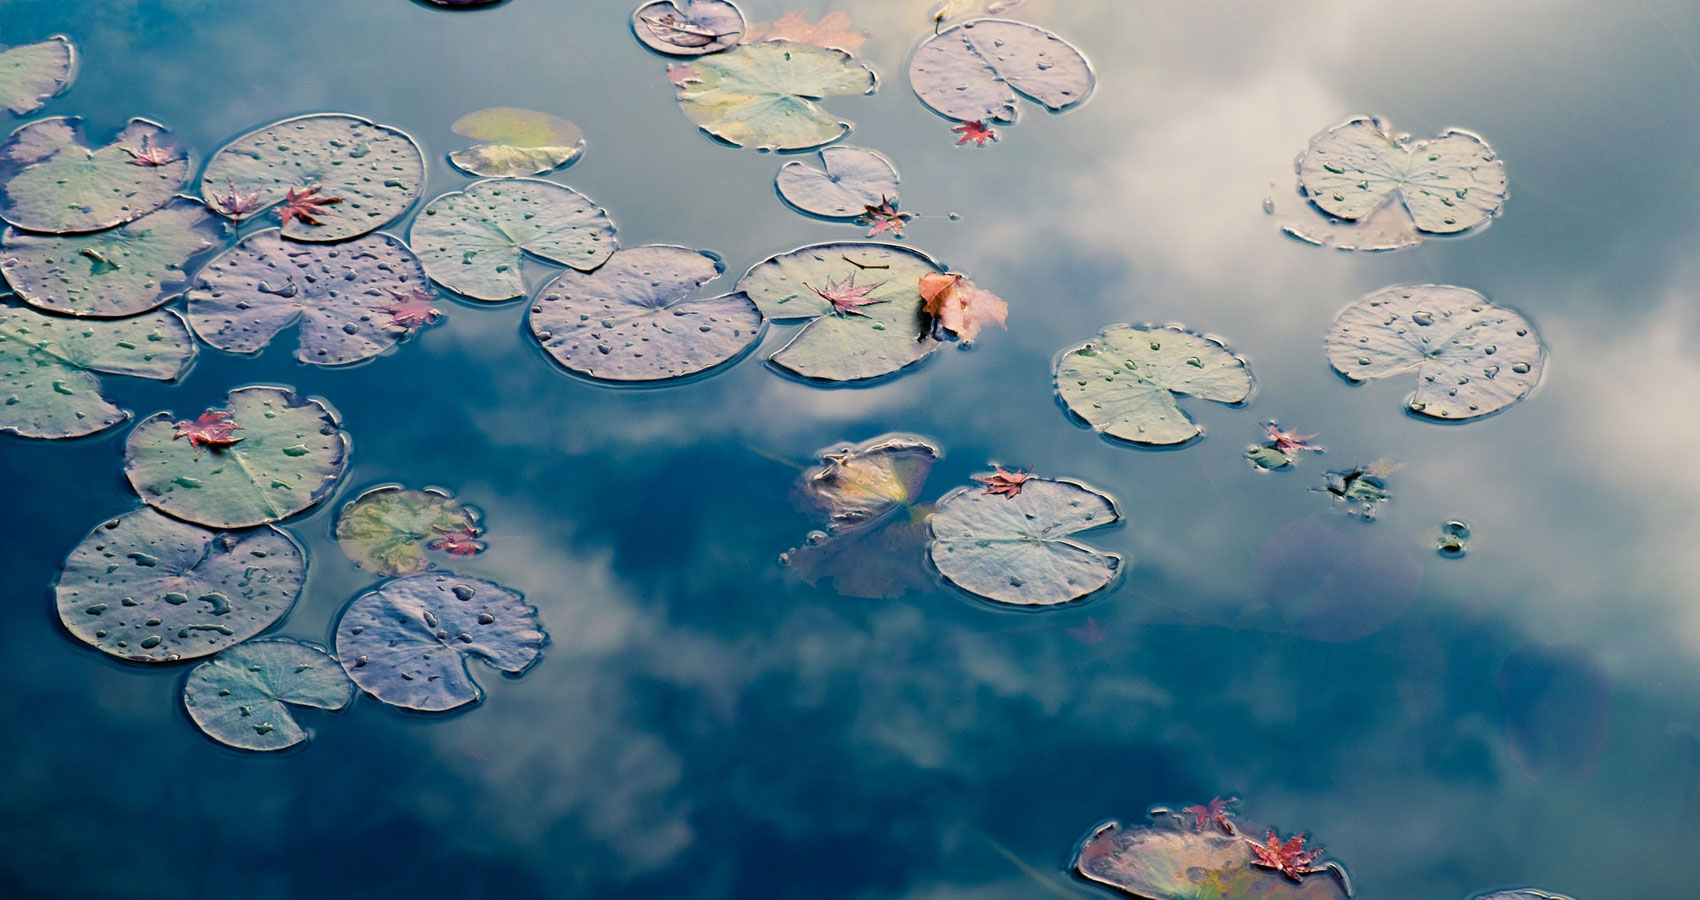 POND II - 9.9.19, poetry written by John L. Stanizzi at Spillwords.com